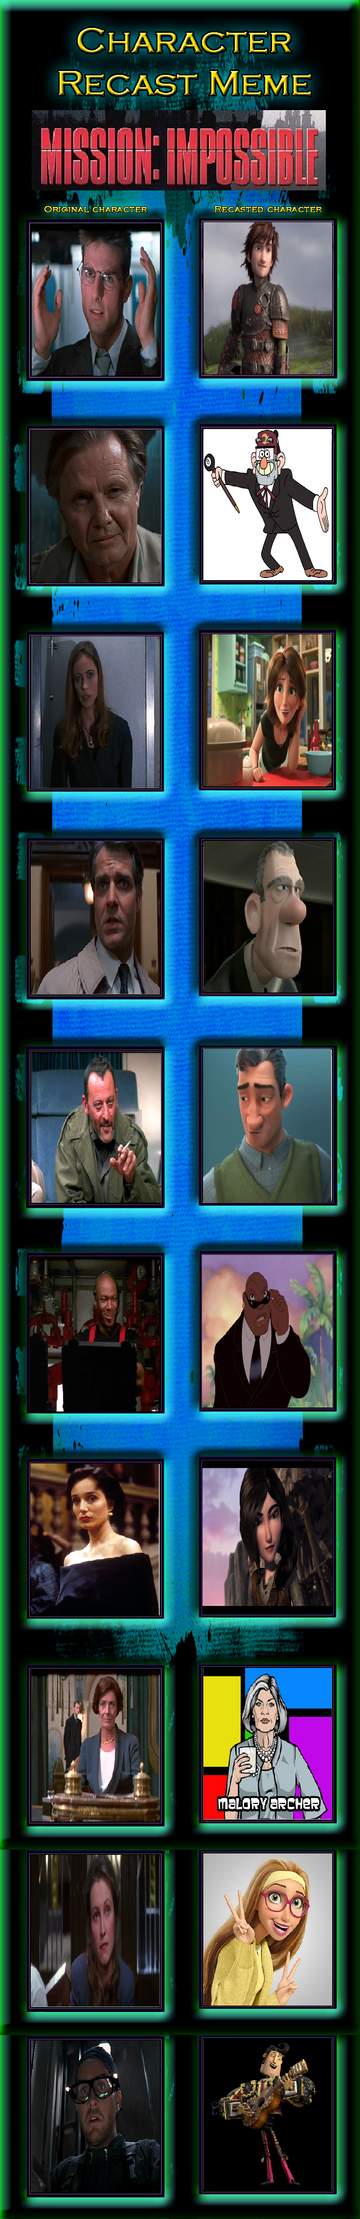 Character Recast Meme - Mission: Impossible by clamanathaeioup